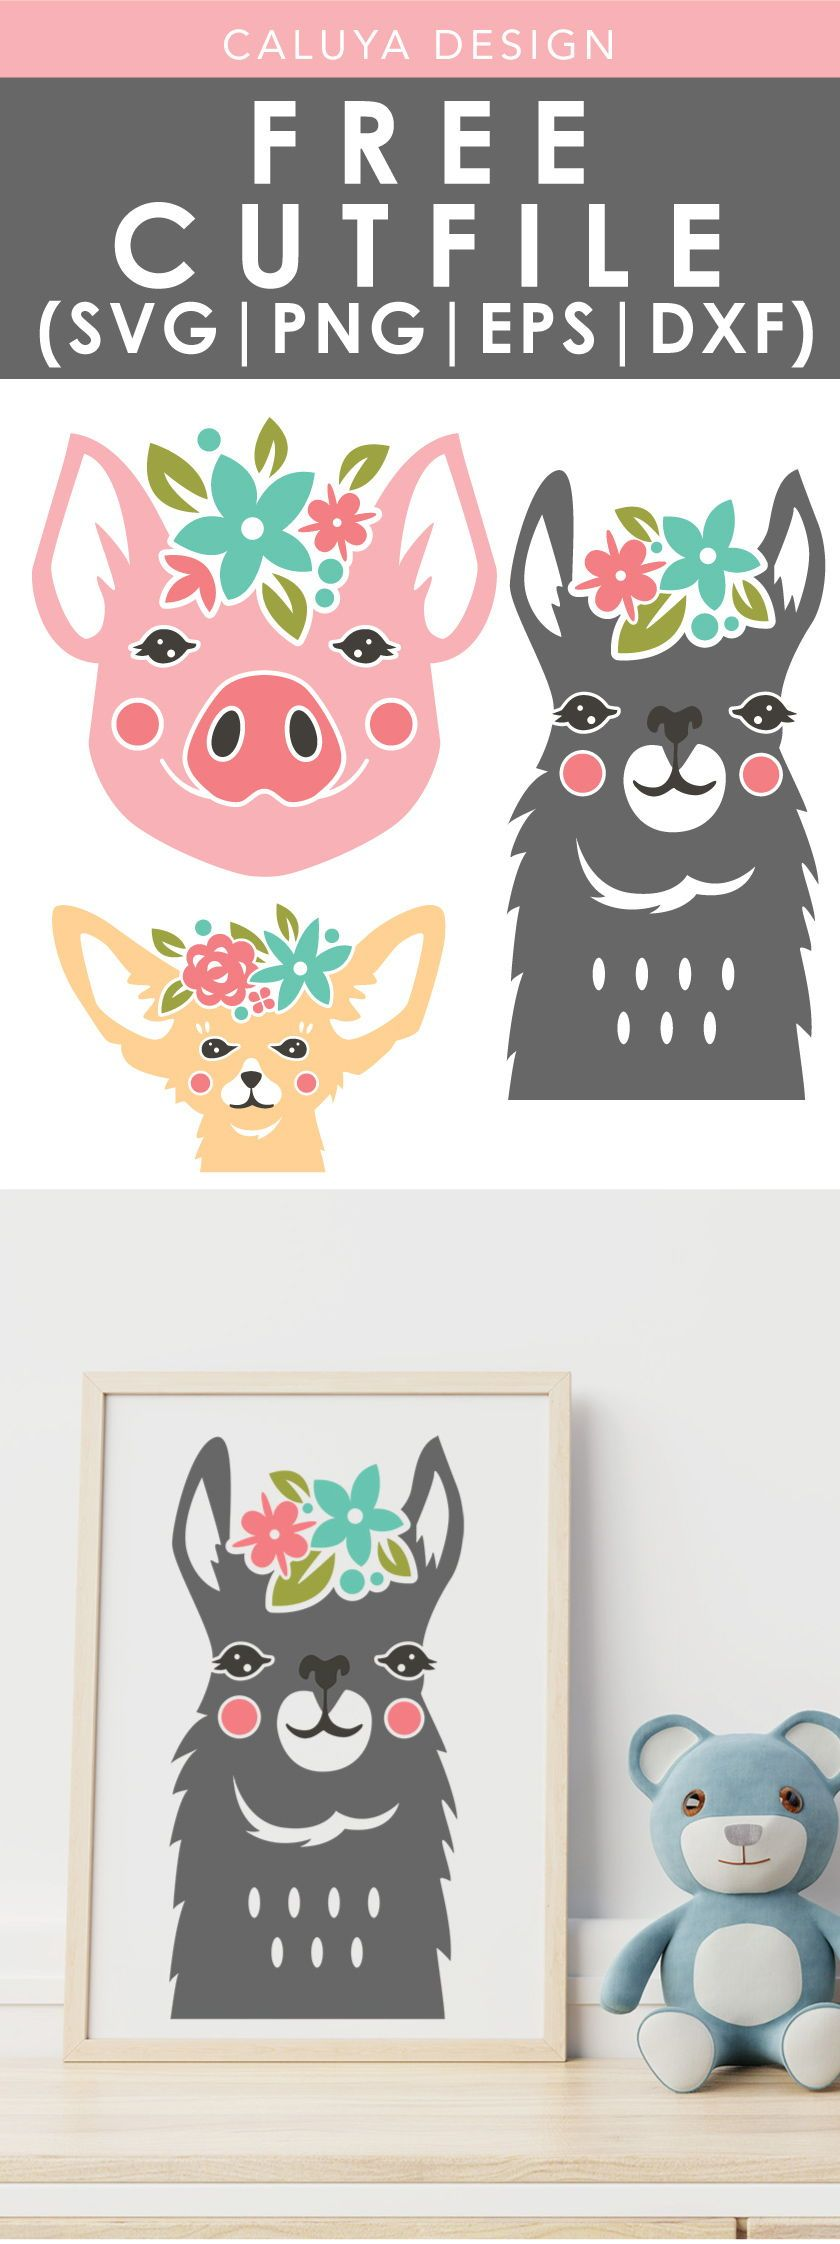 FREE Floral Headset Animals SVG cut file, Printable vector clip art download. Free printable clip art. Compatible with Cameo Silhouette, Cricut explore and other major cutting machines. 100% for personal use, only $3 for commercial use. Perfect for DIY craft project with Cricut & Cameo Silhouette, card making, scrapbooking, making planner stickers, making vinyl decals, t-shirts making , fashion, apparel, HTV, and more! Free Llama SVG cut file, Chihuahua SVG cut file, Piggy SVG cut file, Pig SVG #cricutvinylprojects